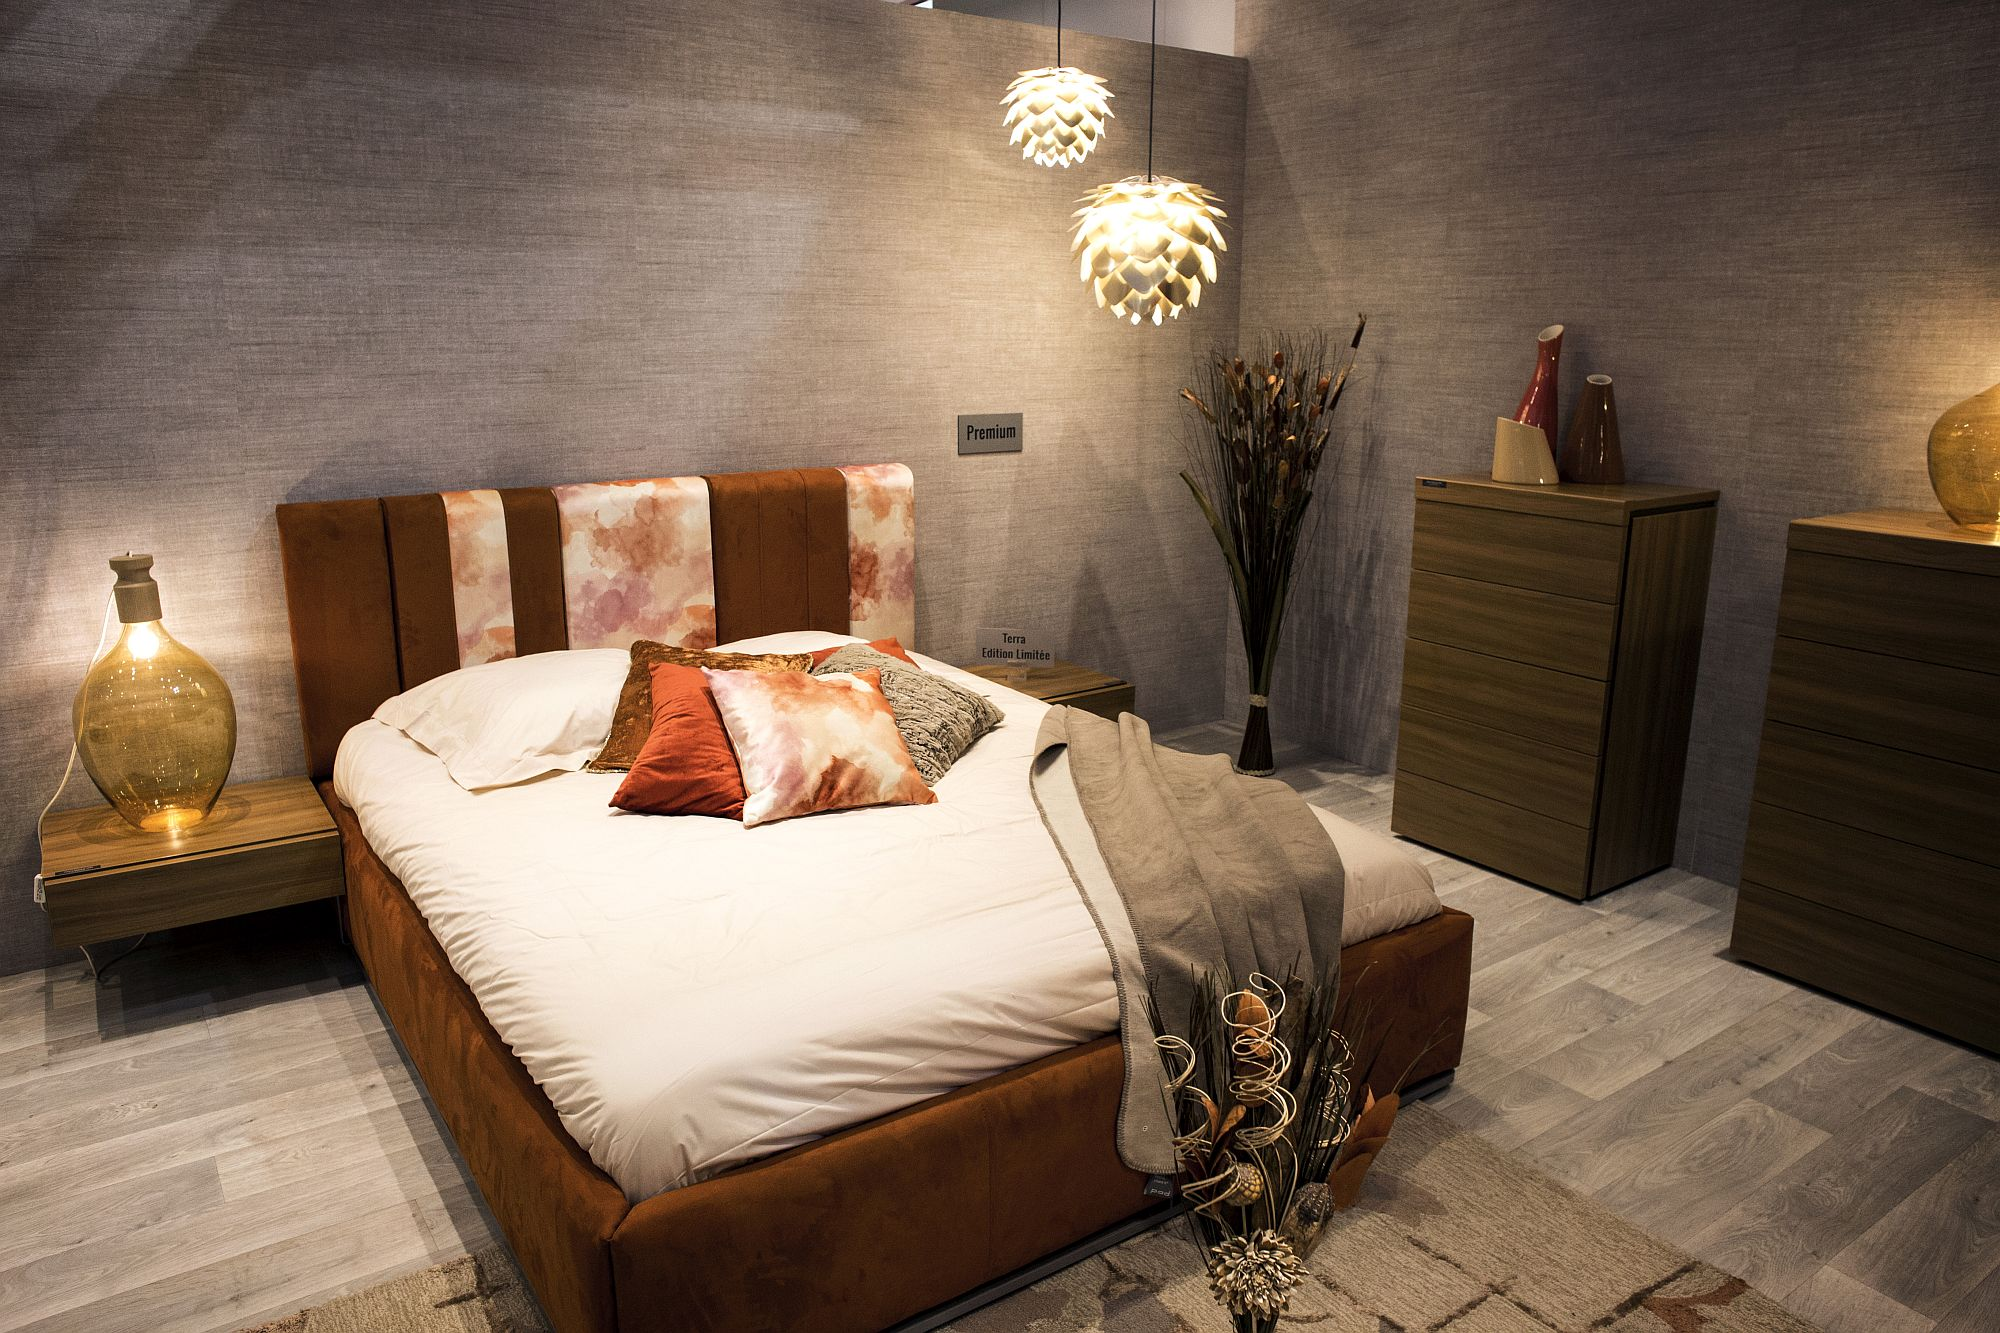 Burnt orange brings color and glamor to the modern bedroom with innovative lighting